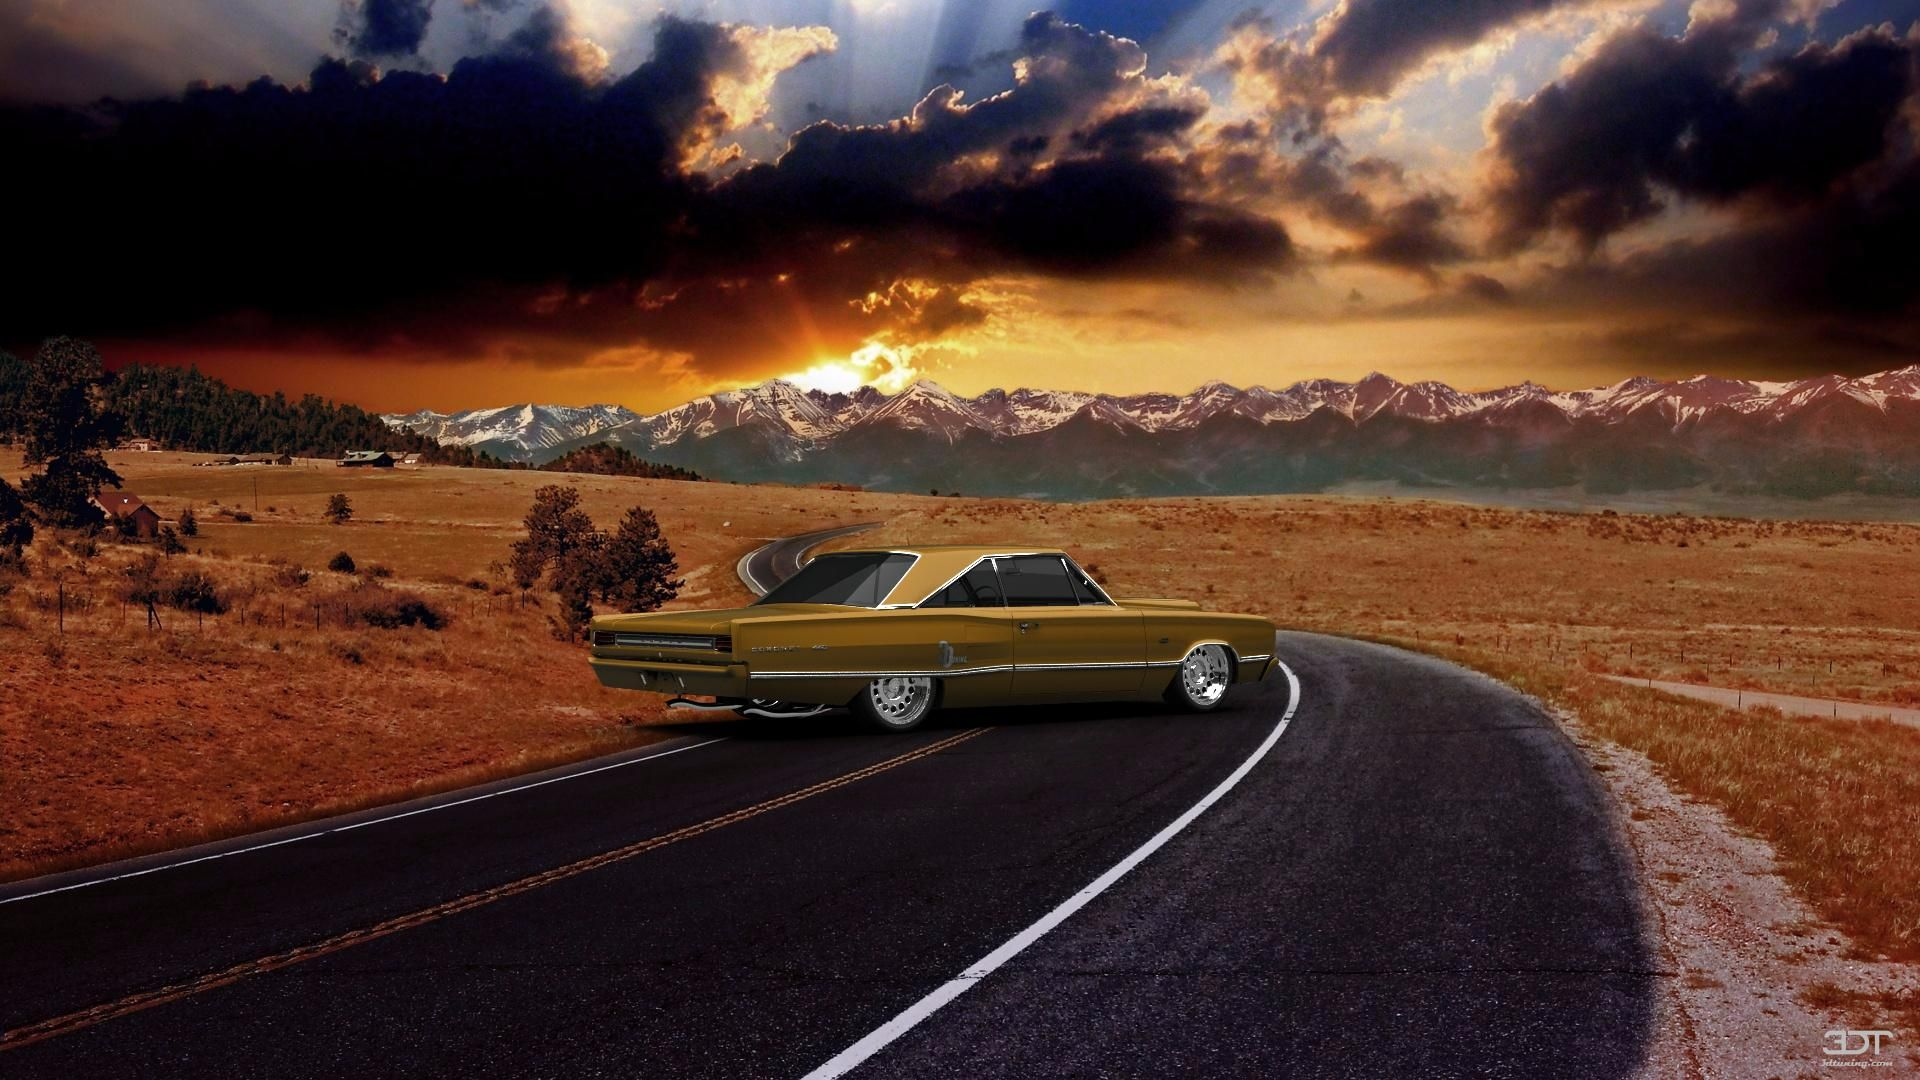 Checkout my tuning Dodge Coronet 1967 at 3DTuning 3dtuning